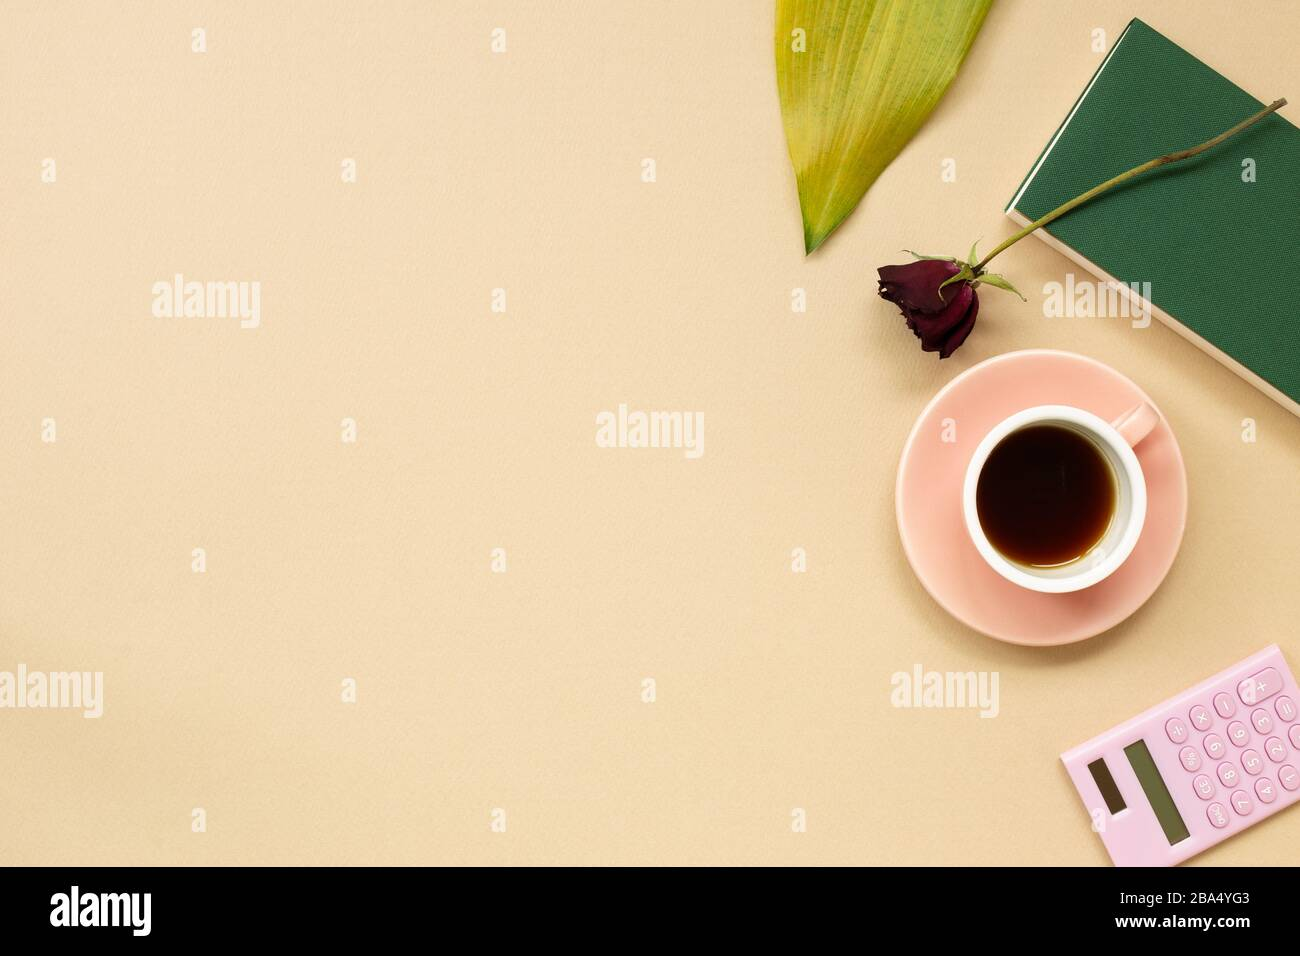 Work And Study Place Note Book Cup Of Coffee Calculator With Floral Decoration Flat Lay Top View Copy Space Stock Photo Alamy